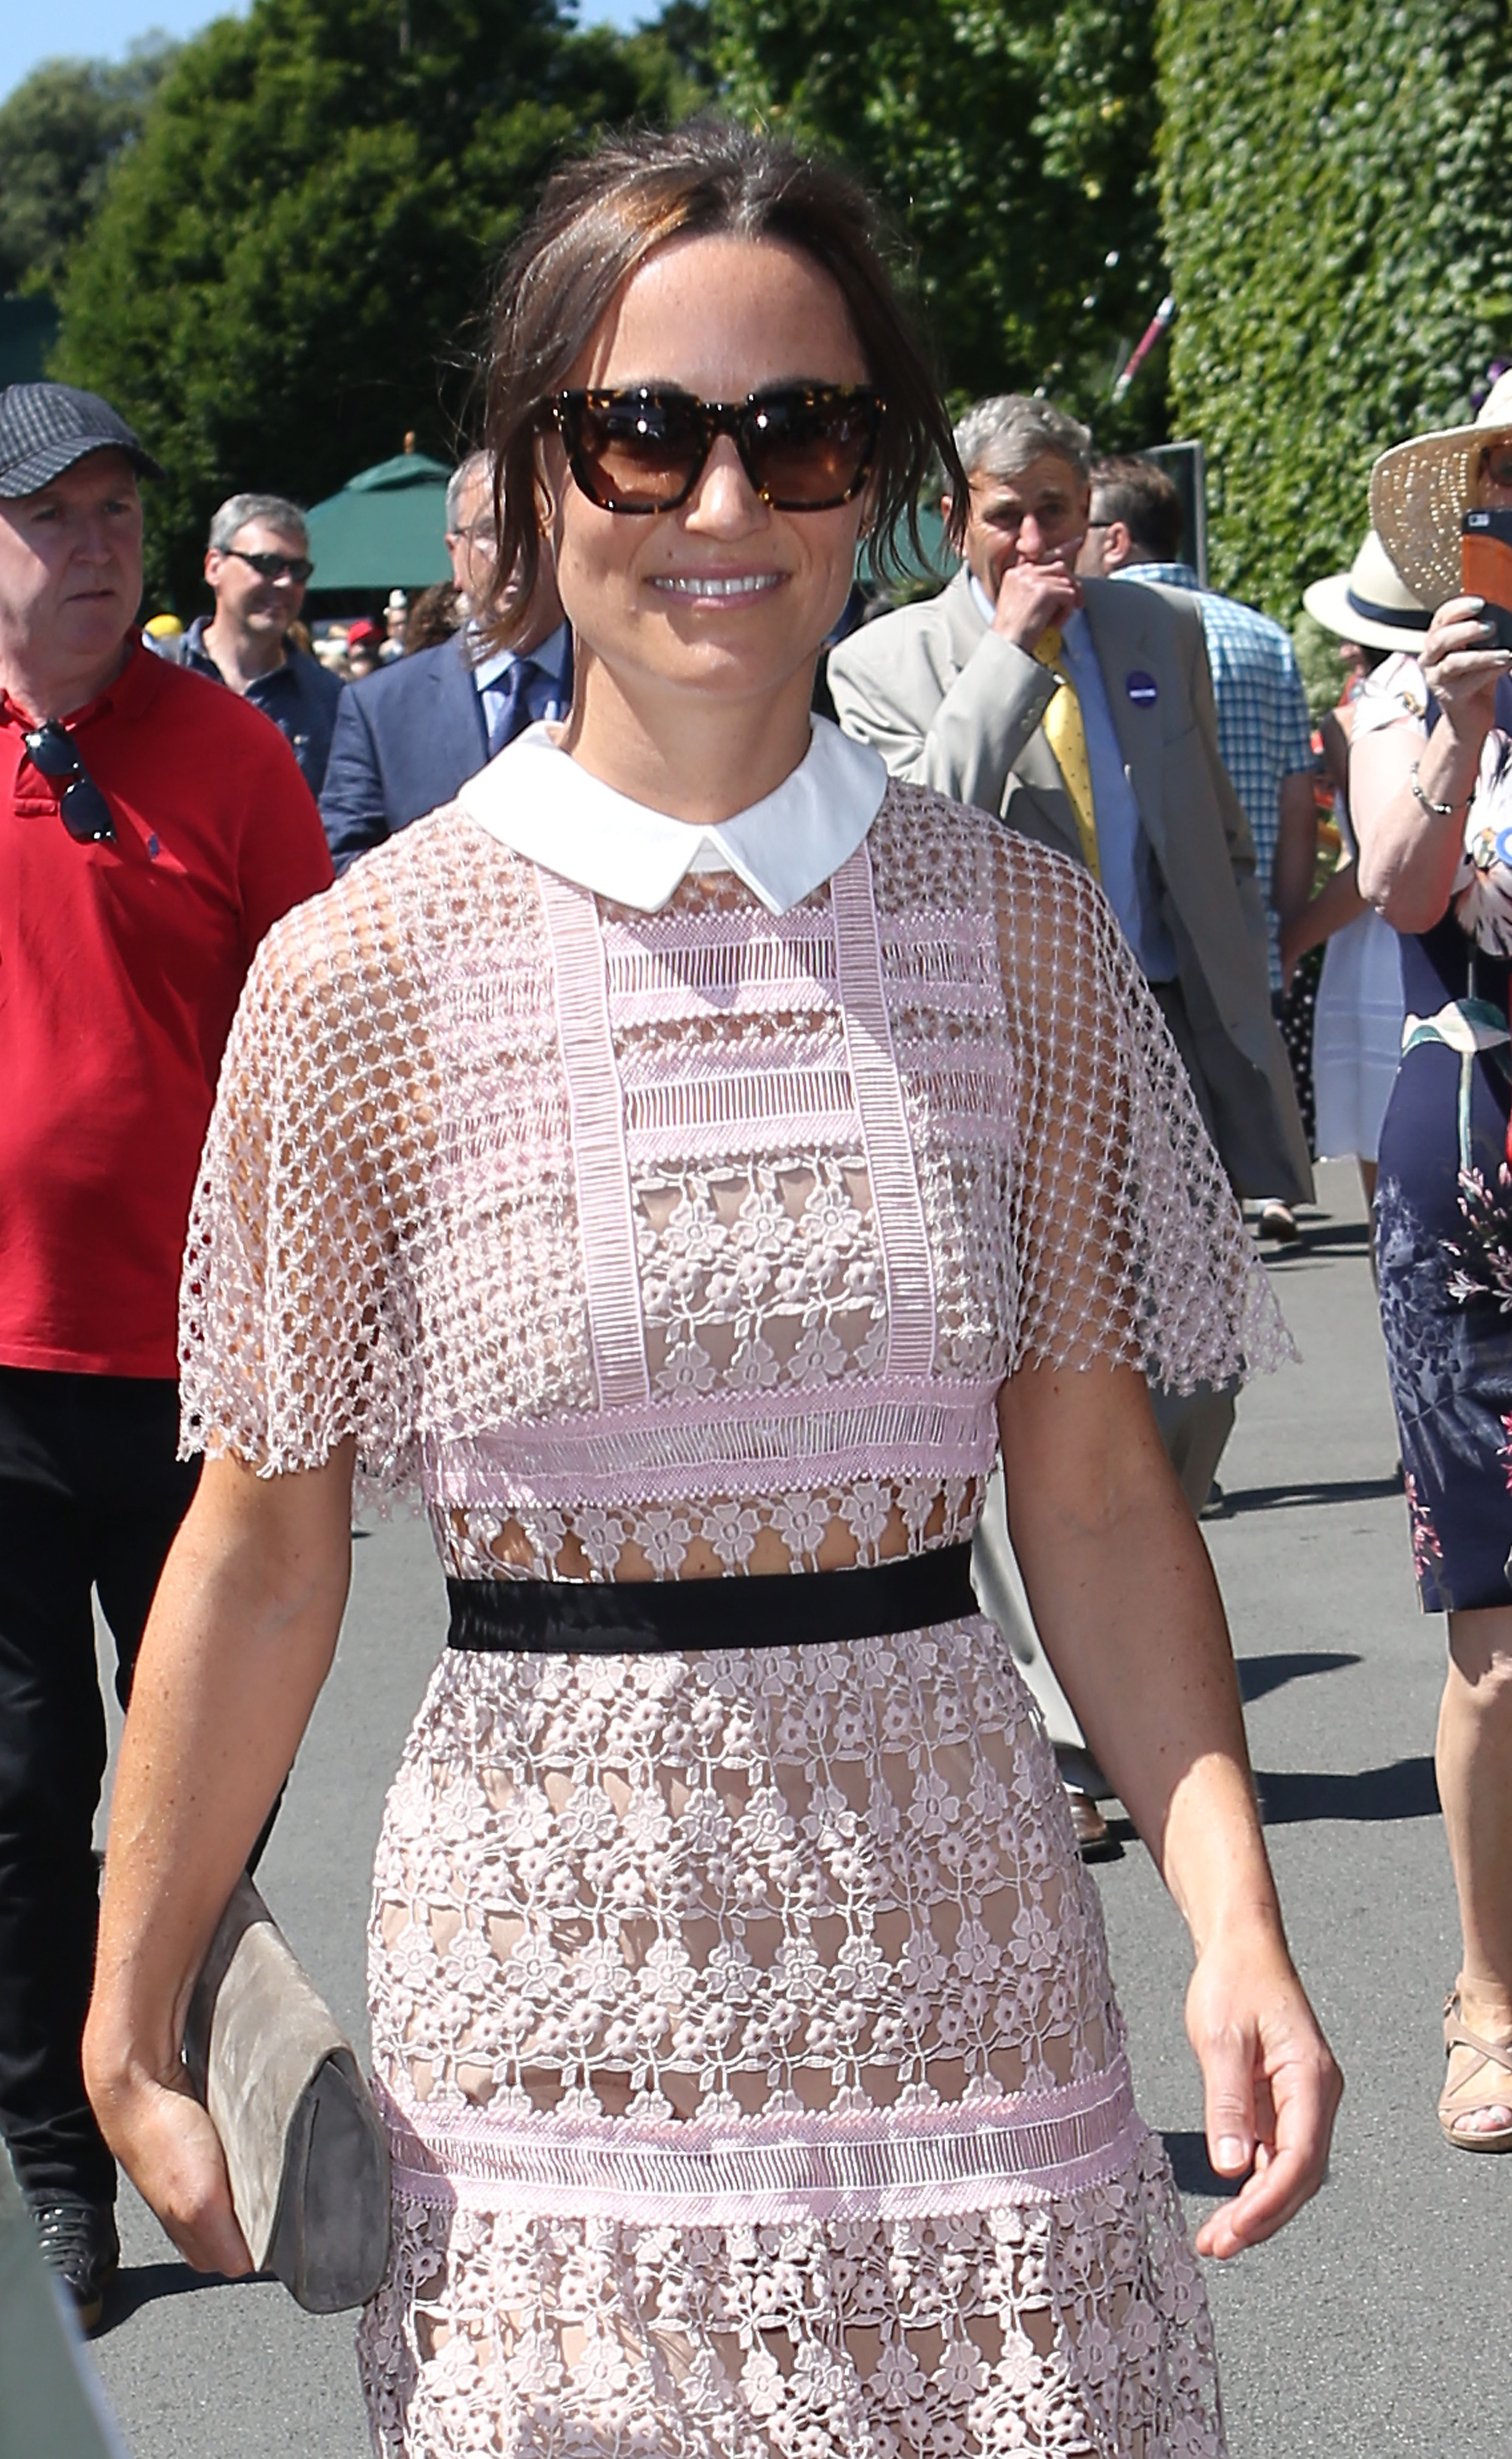 Pippa Middleton arrives on day three of the Wimbledon Championships at the All England Lawn Tennis and Croquet Club, Wimbledon., Image: 340910944, License: Rights-managed, Restrictions: Editorial use only. No commercial use without prior written consent of the AELTC. Still image use only - no moving images to emulate broadcast. No superimposing or removal of sponsor/ad logos., Model Release: no, Credit line: Profimedia, Press Association